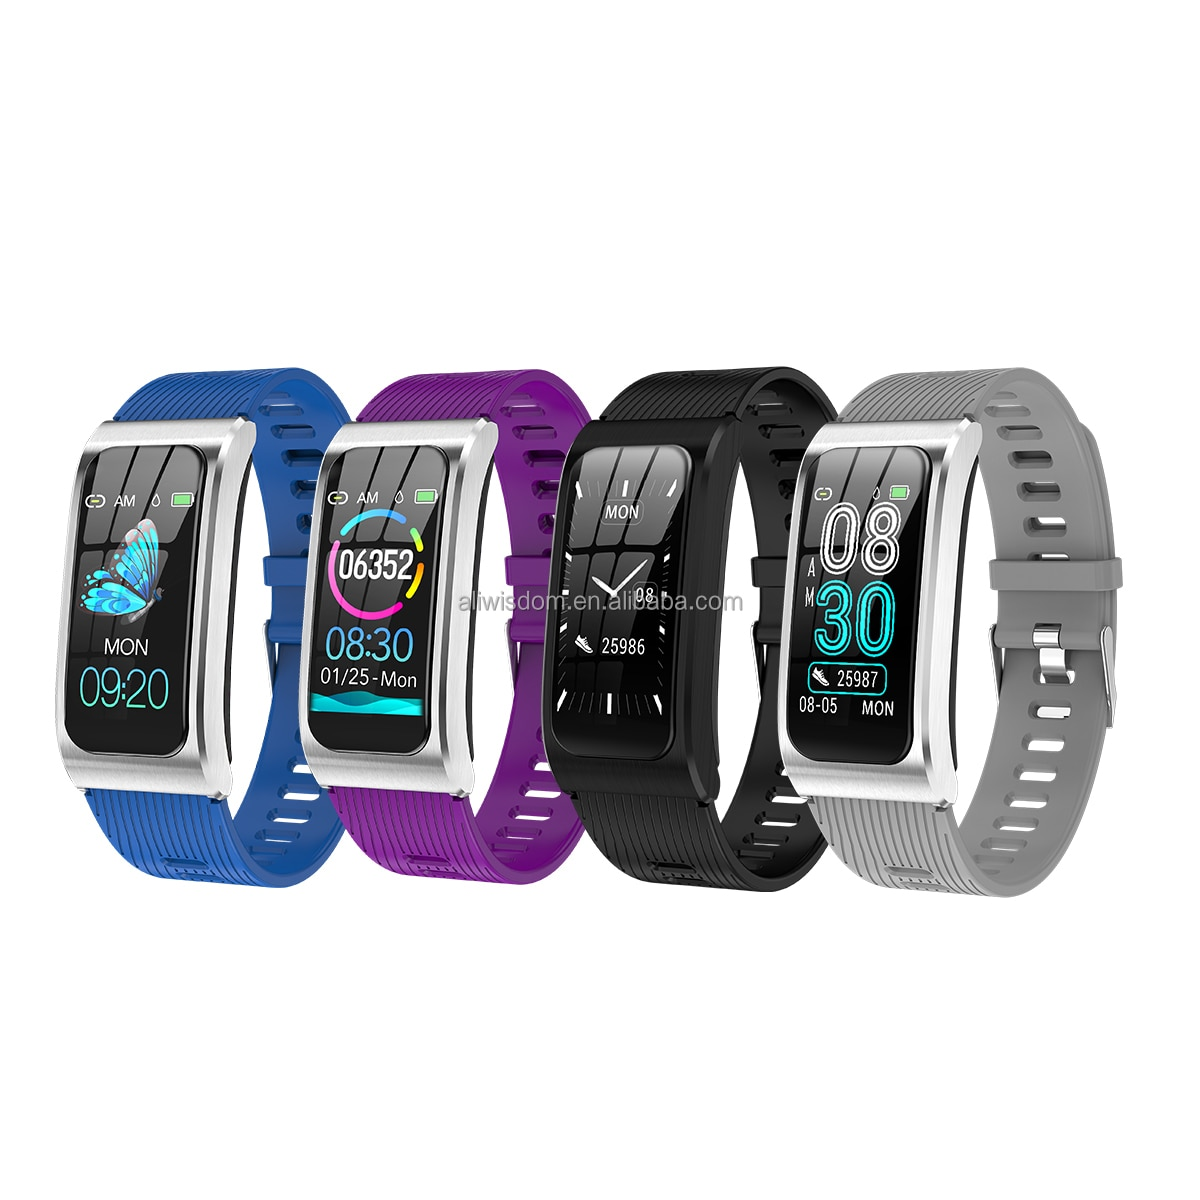 Sports Fitness Traker Smart Watches With Bracelets Wristband For Women Set IP67 Waterproof AK12 Steel ,Silicone, Leather Wrist